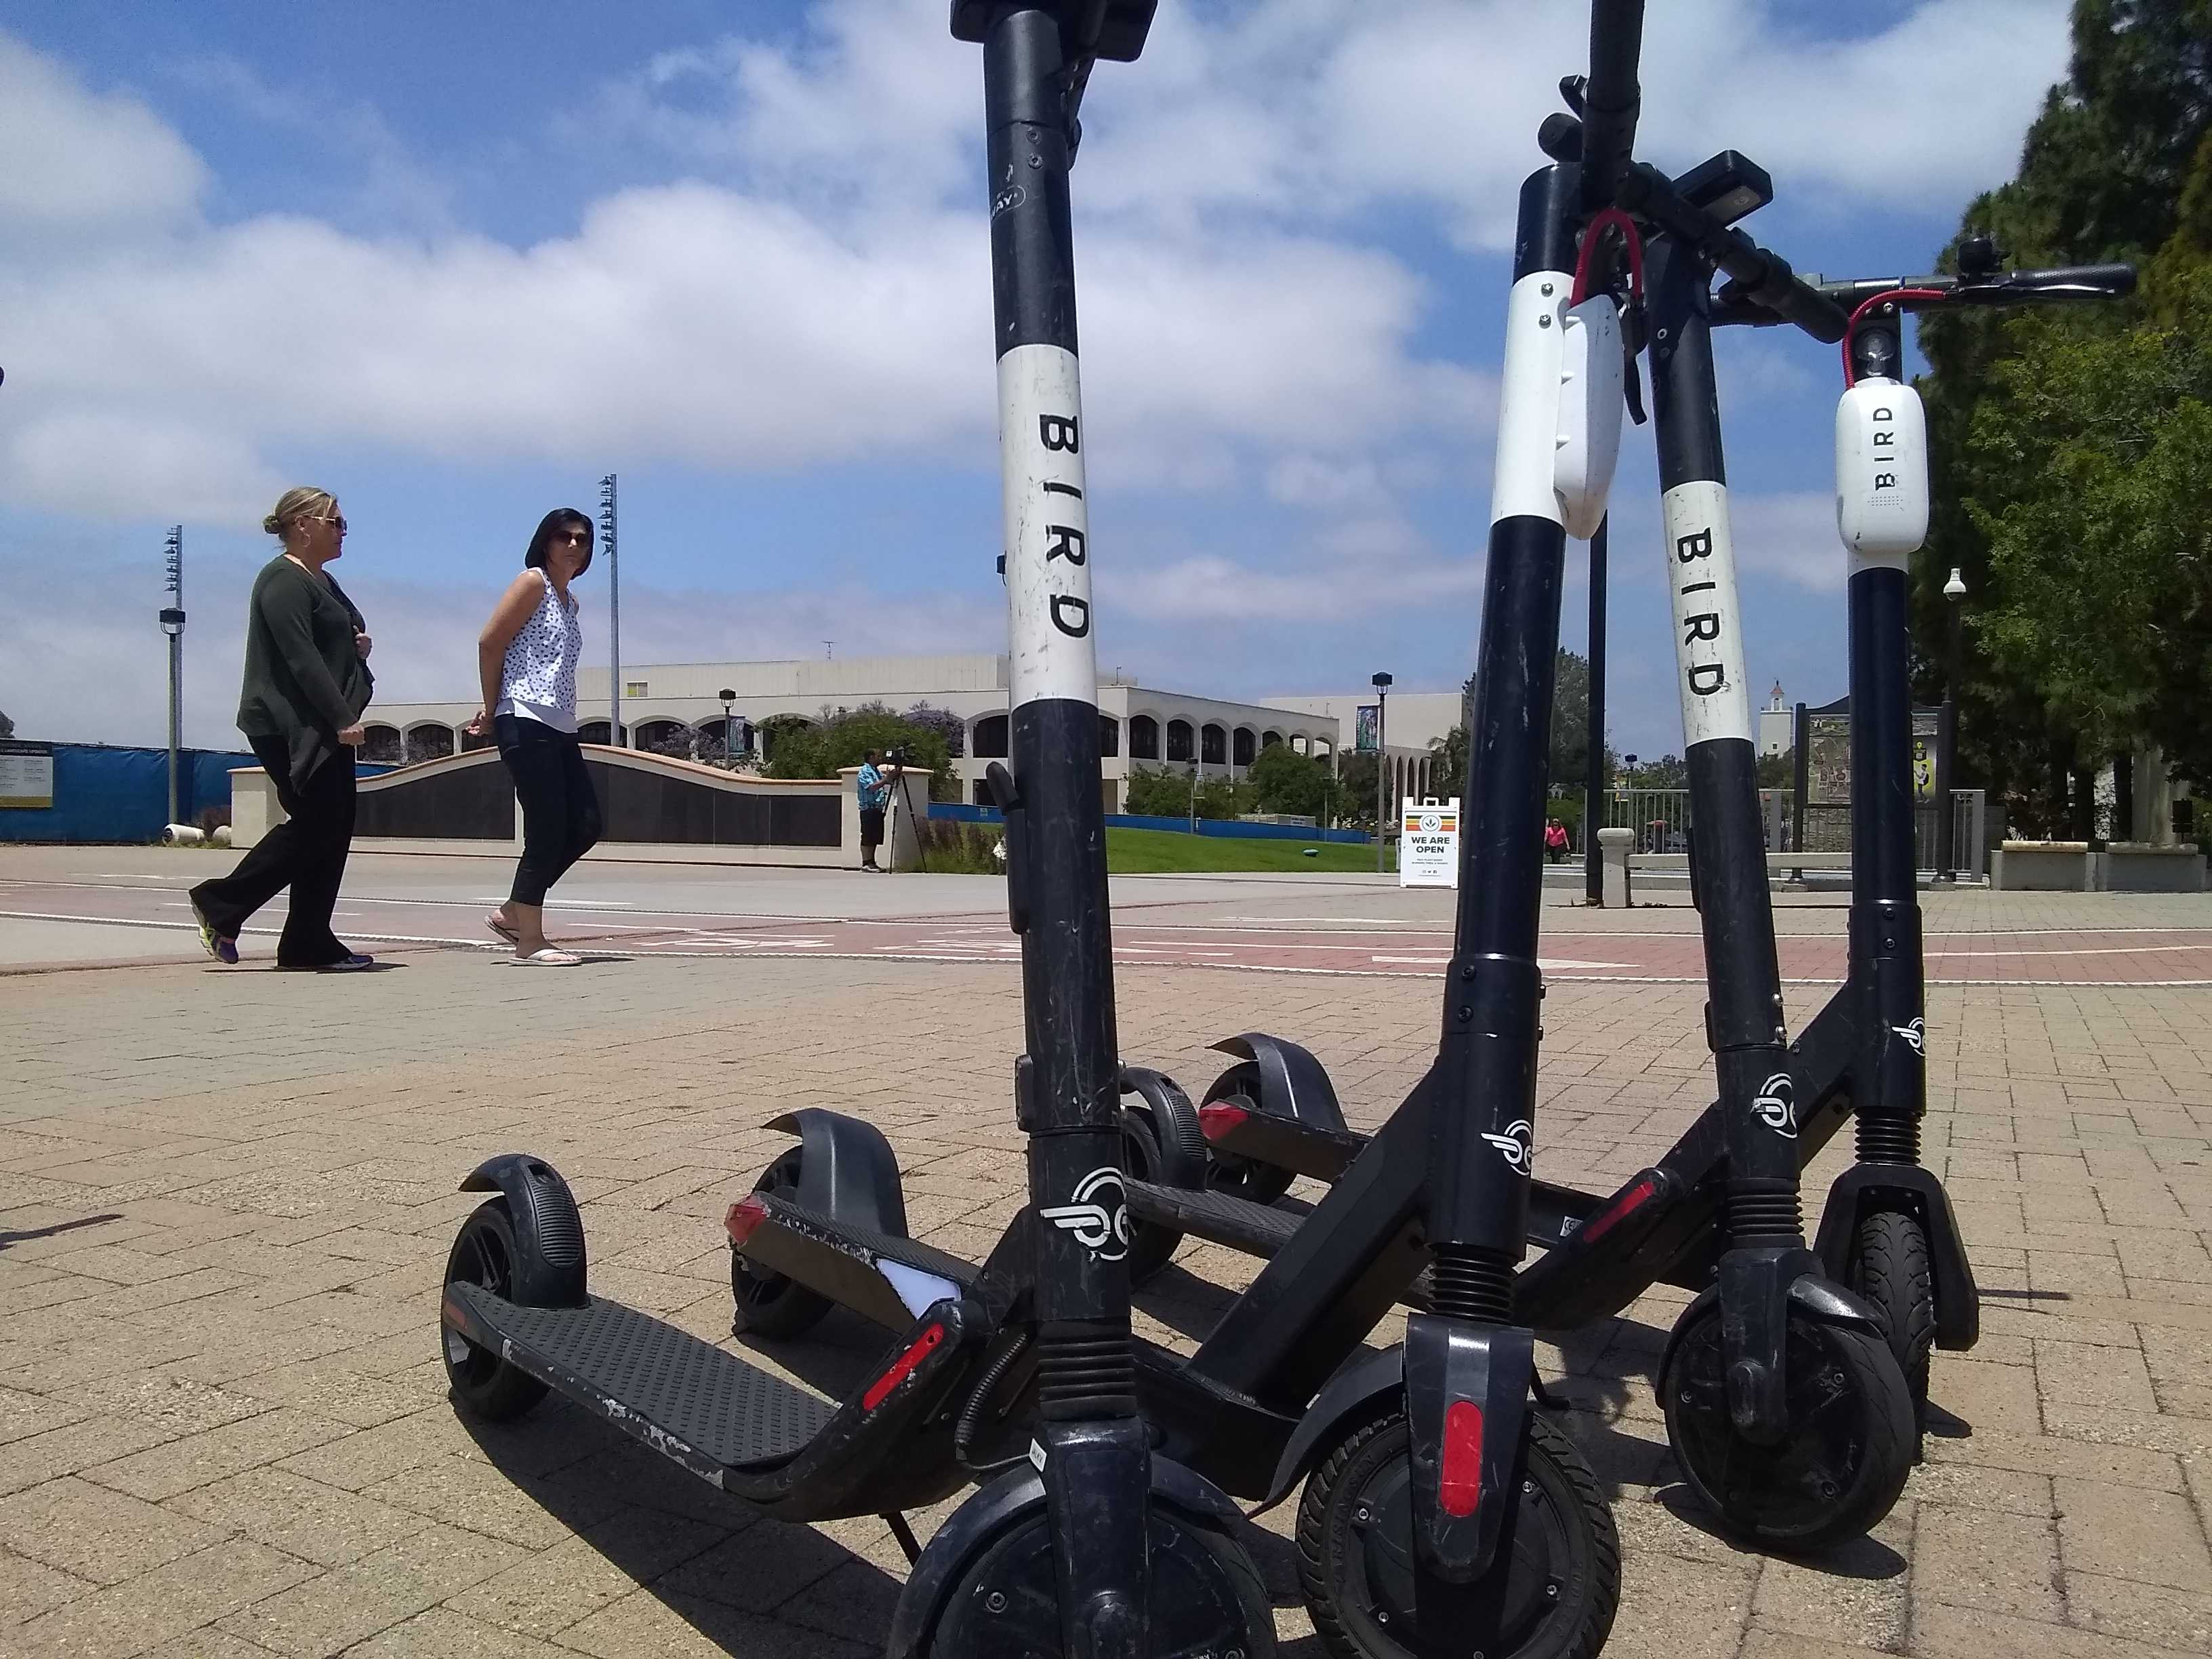 Faulconer Proposes Late-Night Curfew For Dockless Scooters